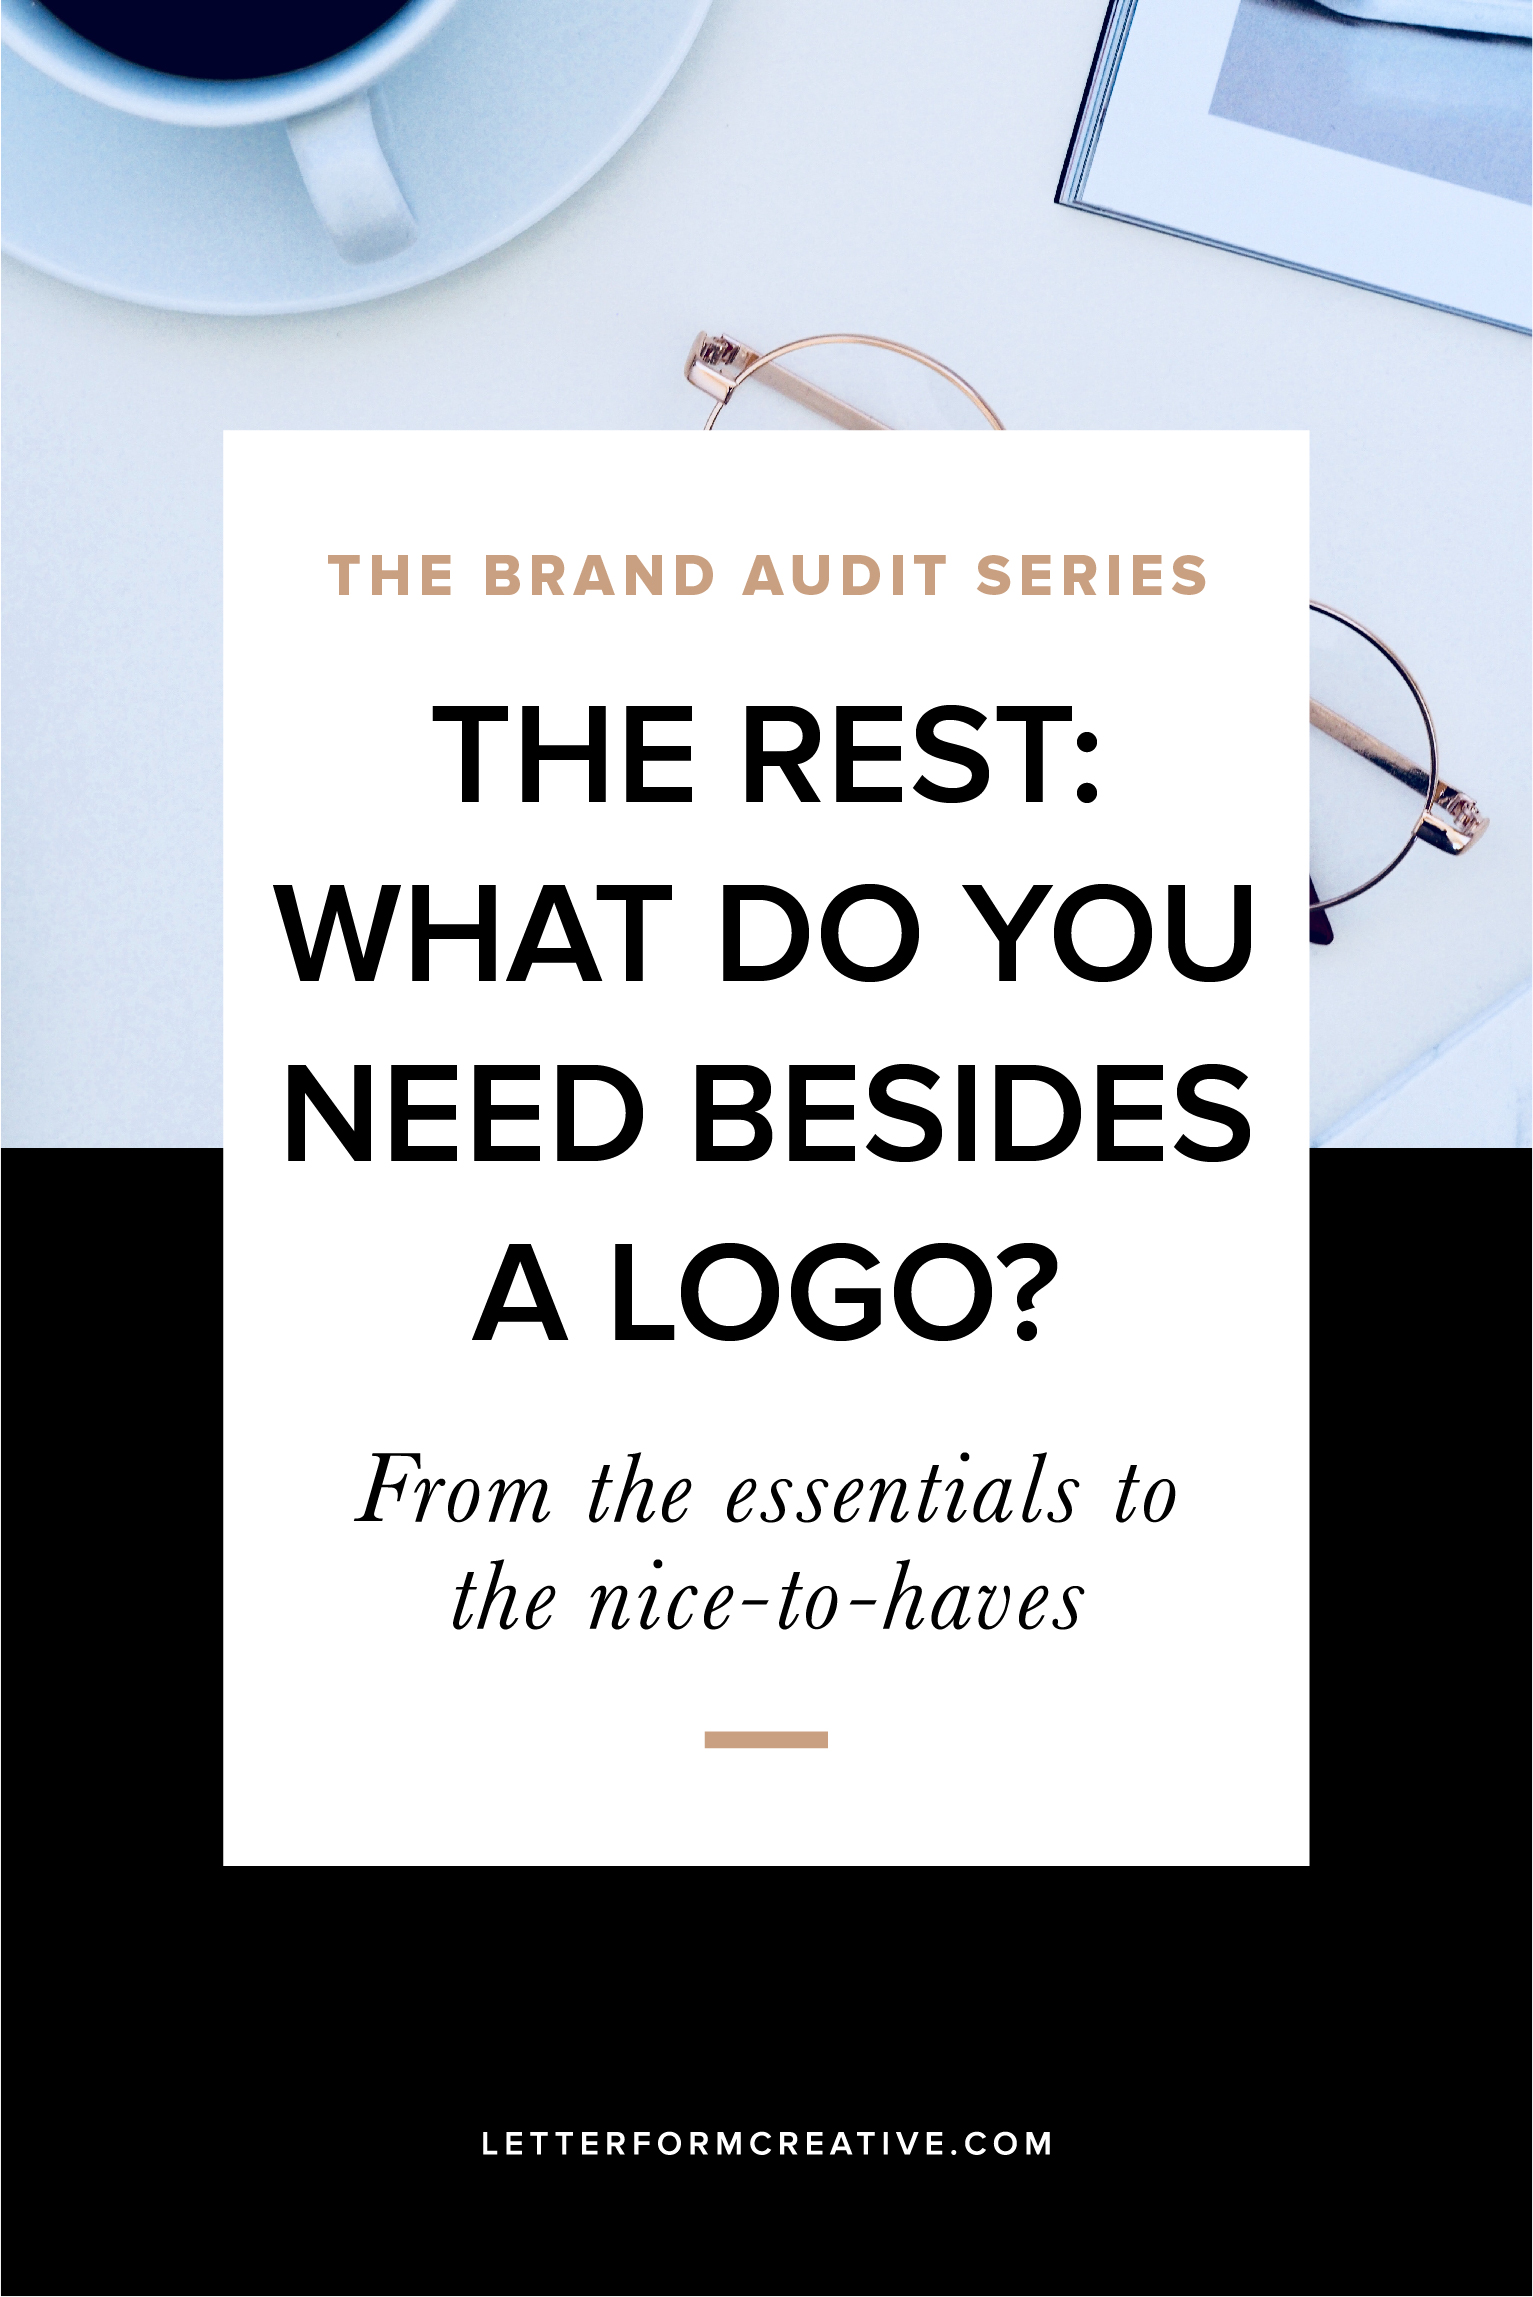 So you have a great logo for your business. What's next? Find out what you need to complete the branding for your small business in the latest installment of the Brand Audit Series. From the essentials to the nice-to-haves, this post covers everything you need to look and feel professional. Click through to read!